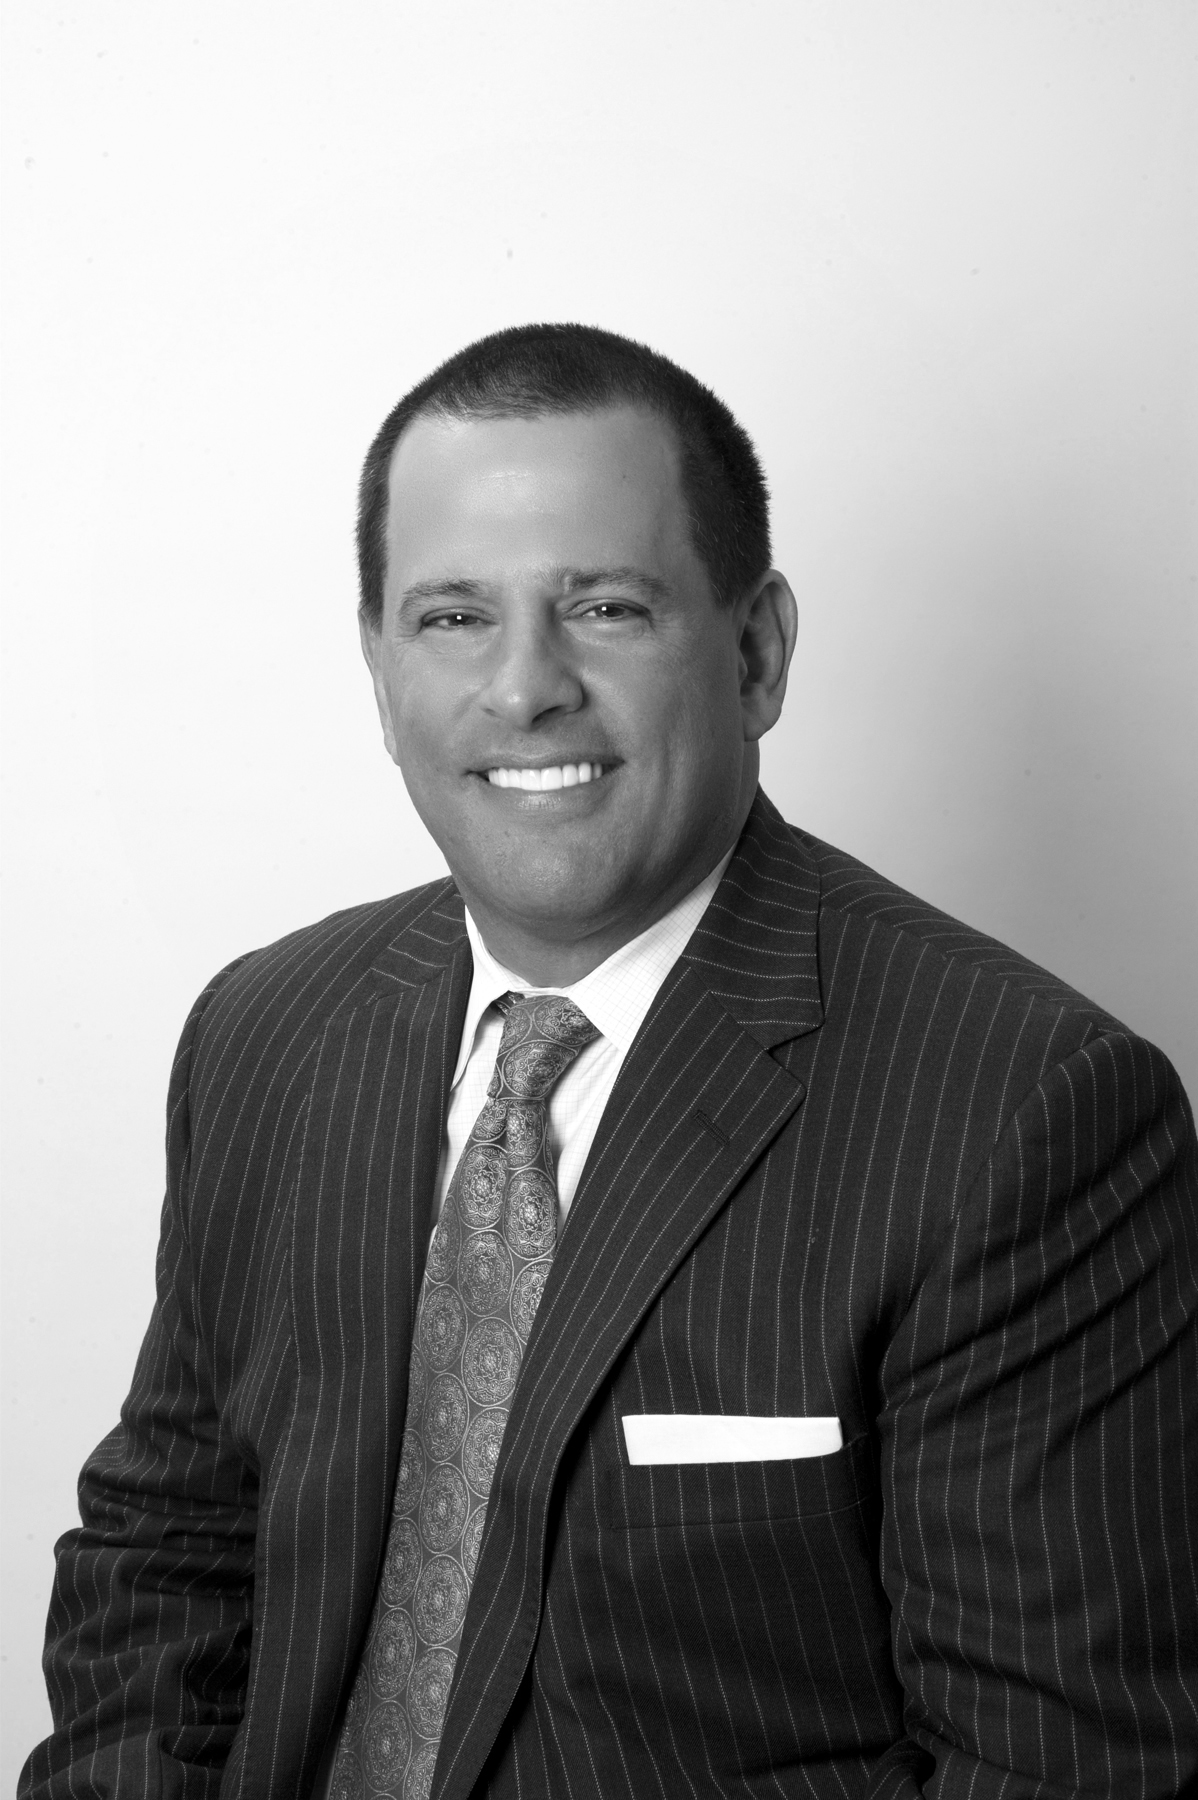 Christopher McMahon, financial advisor Moon Township PA